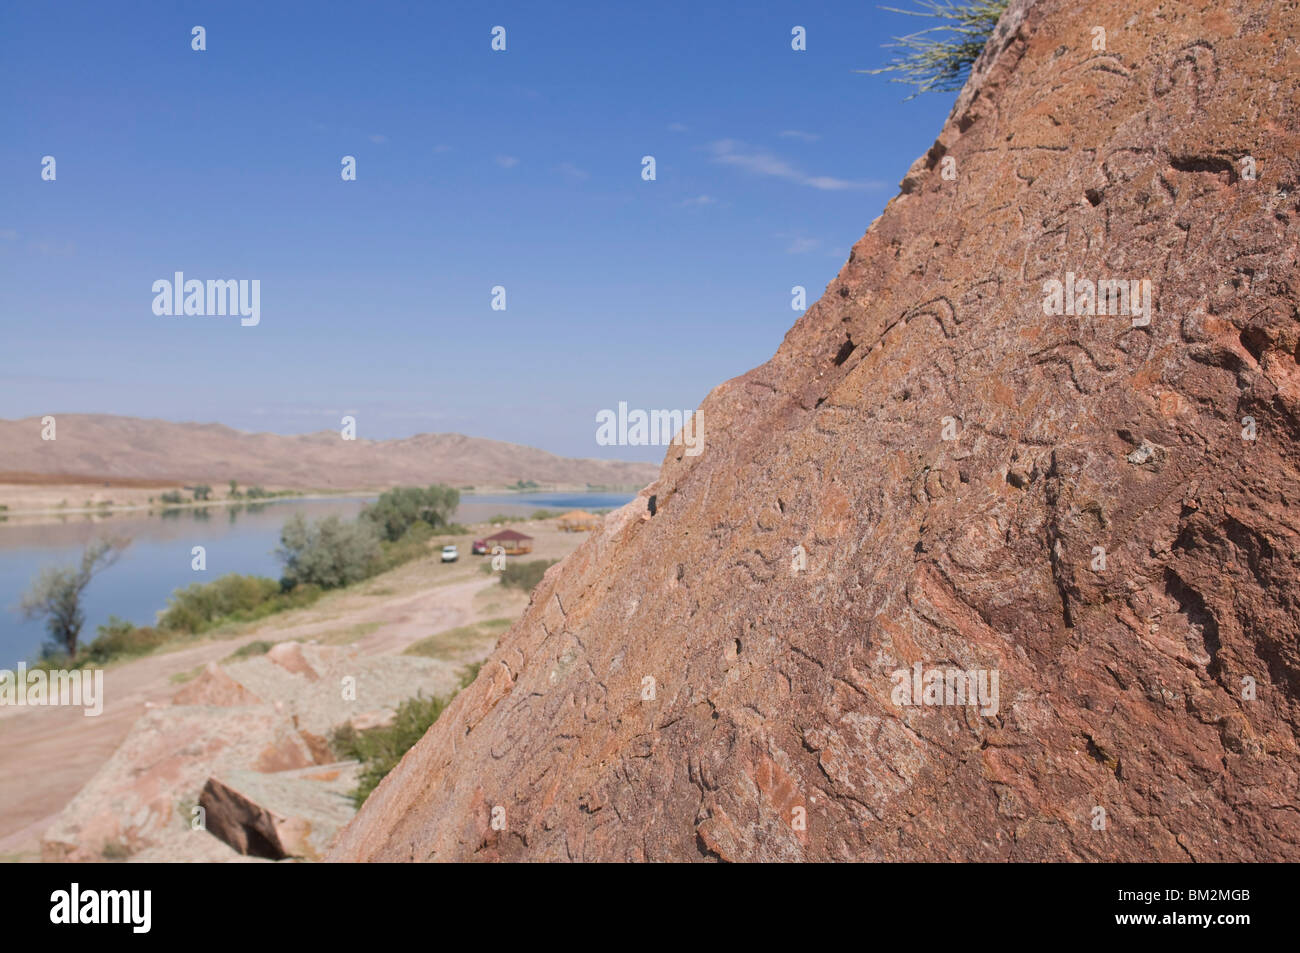 Buddhist rock carvings, Tamagaly Das, Kazakhstan - Stock Image